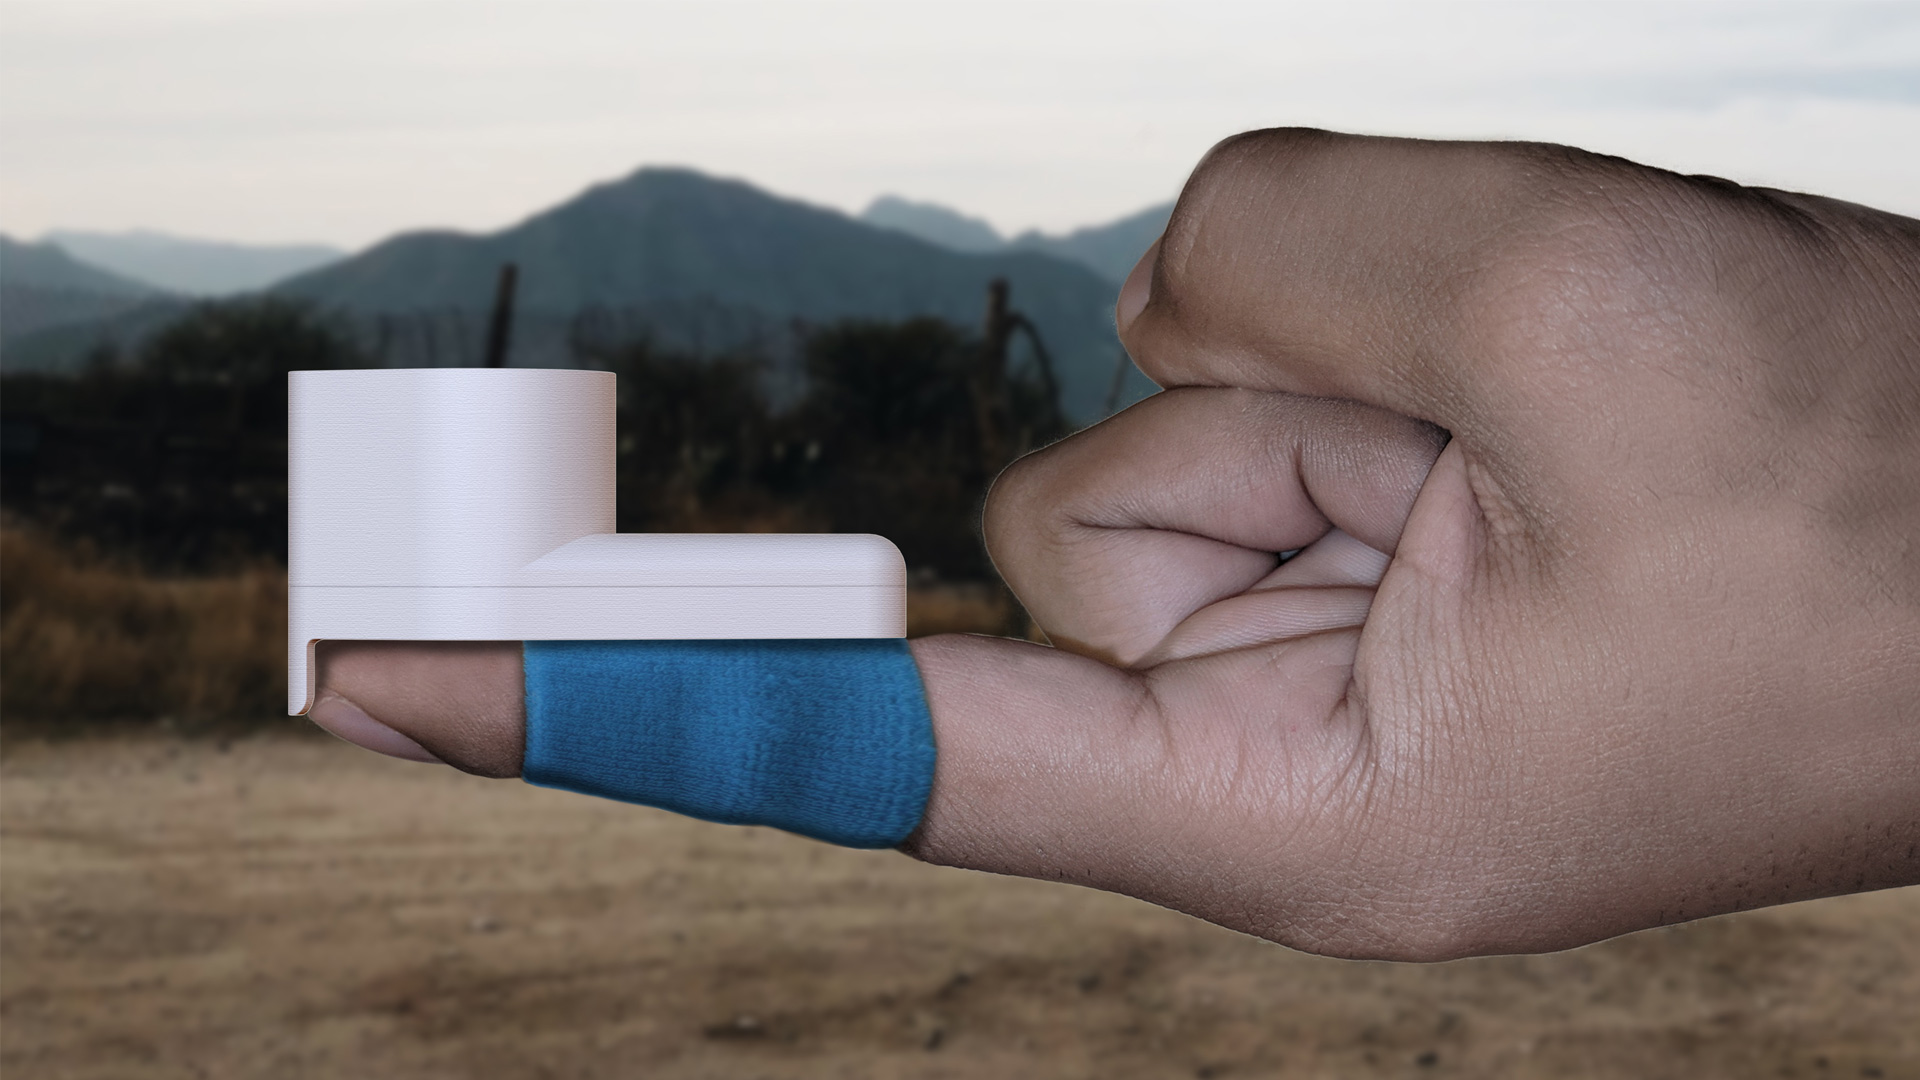 Finger wearing Catch HIV detector